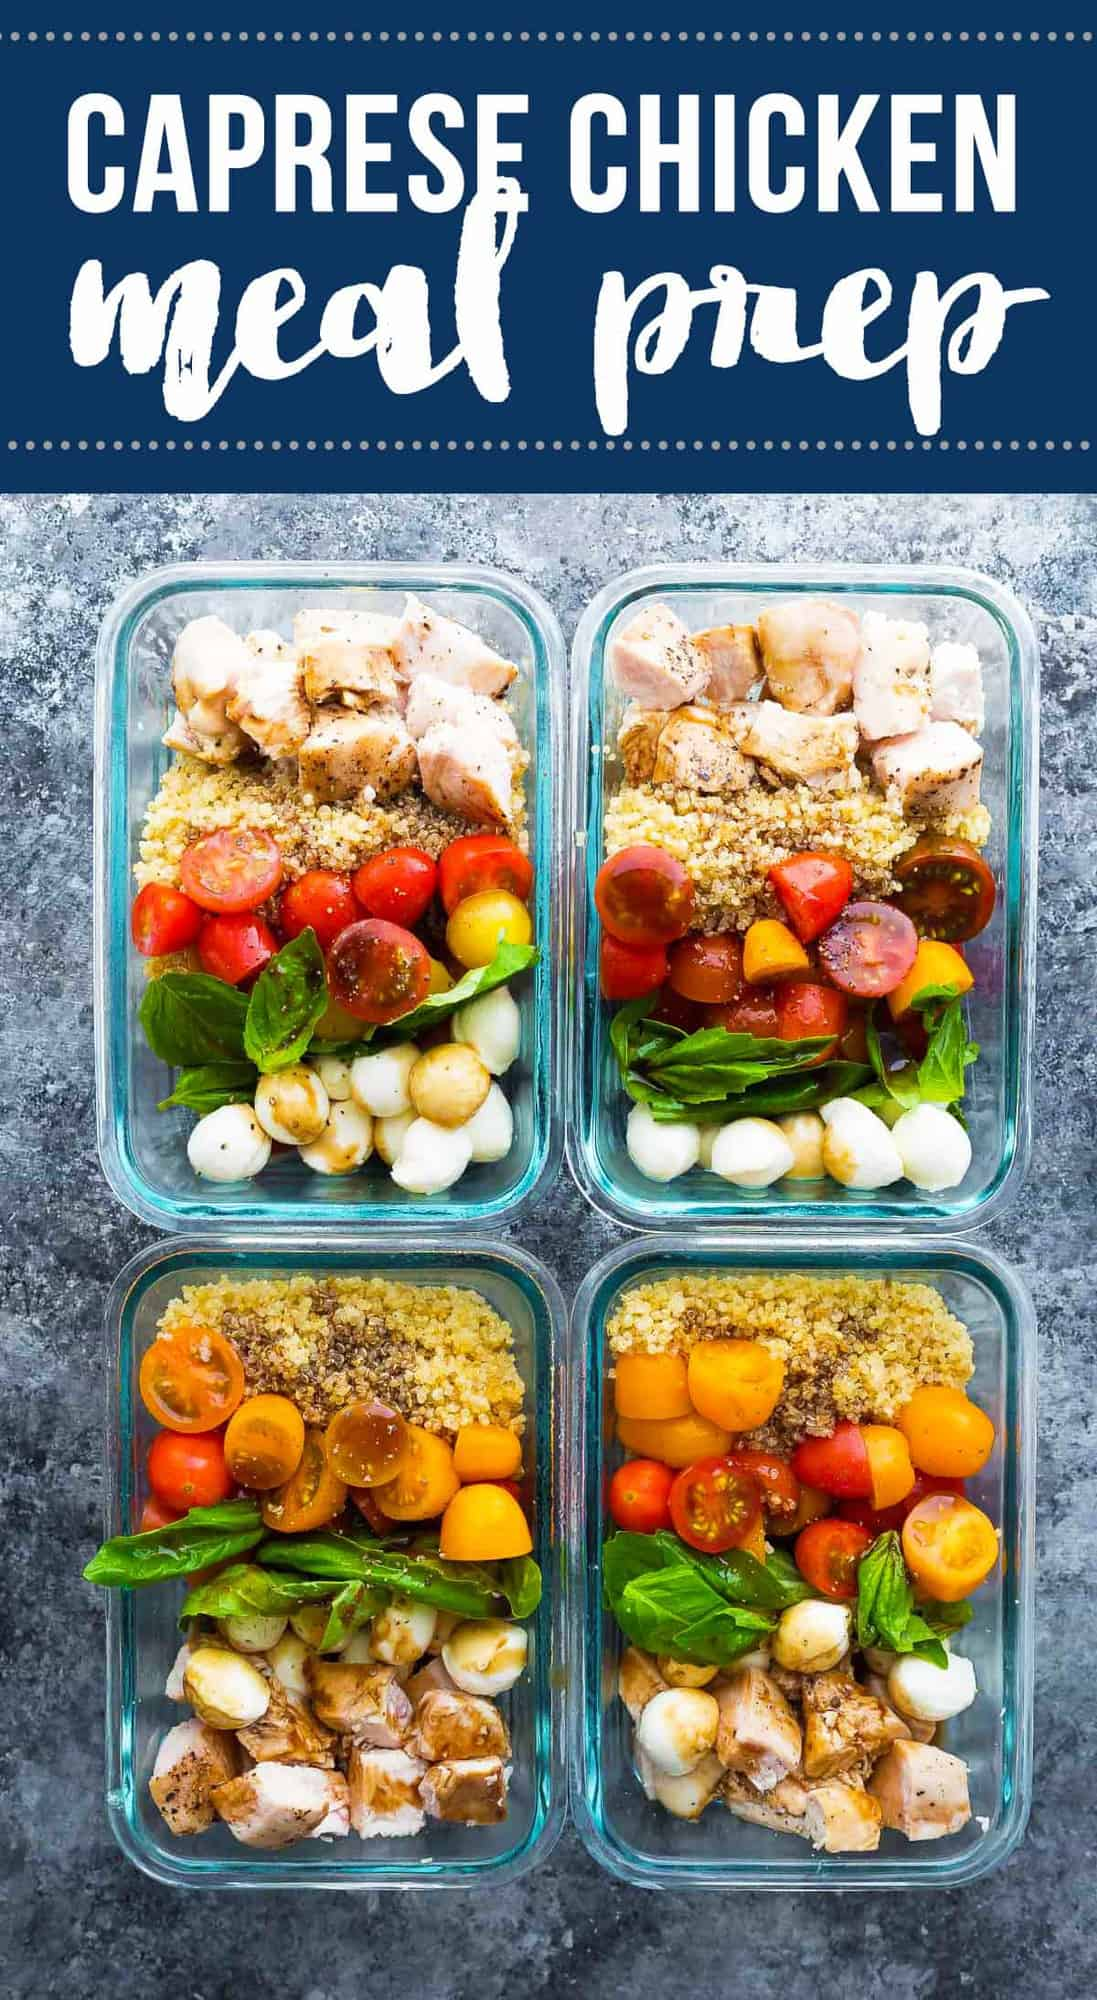 Caprese chicken salad meal prep bowls bring a dose of summer to your lunch. With baked chicken, fresh cherry tomatoes, baby bocconcini, quinoa and basil leaves all drizzled in a balsamic vinaigrette. #sweetpeasandsaffron #mealprep #salad #chicken #quinoa